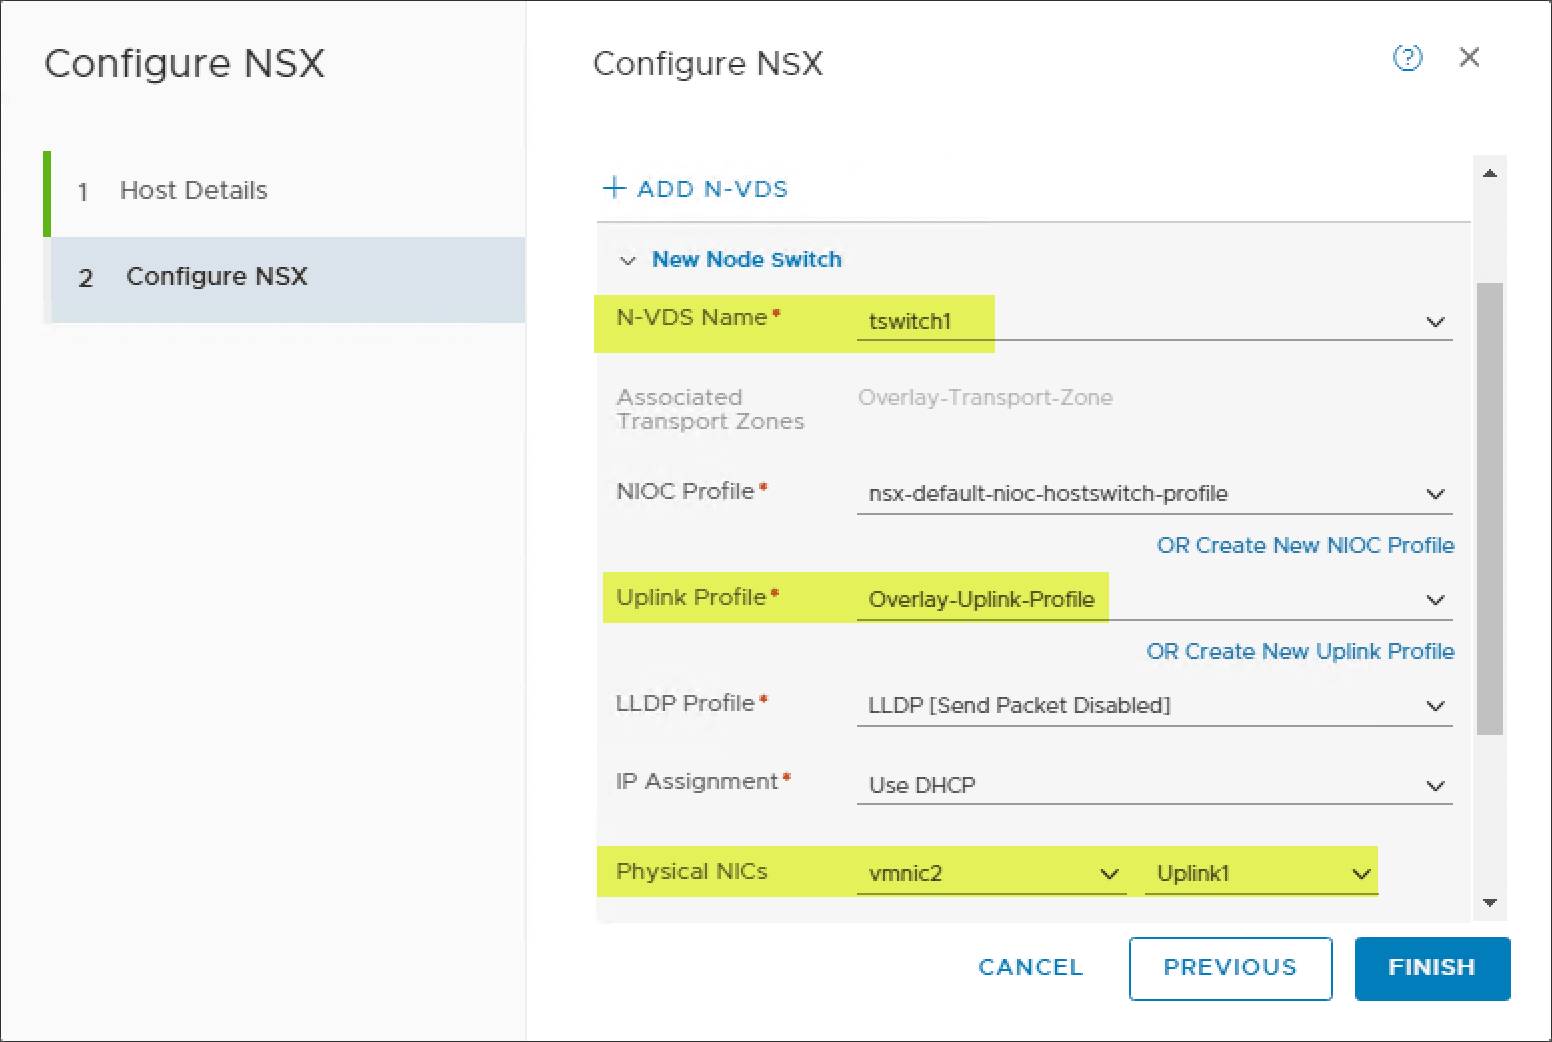 How-to-Manage-the-NSX-T-N-VDS-Virtual-Switch